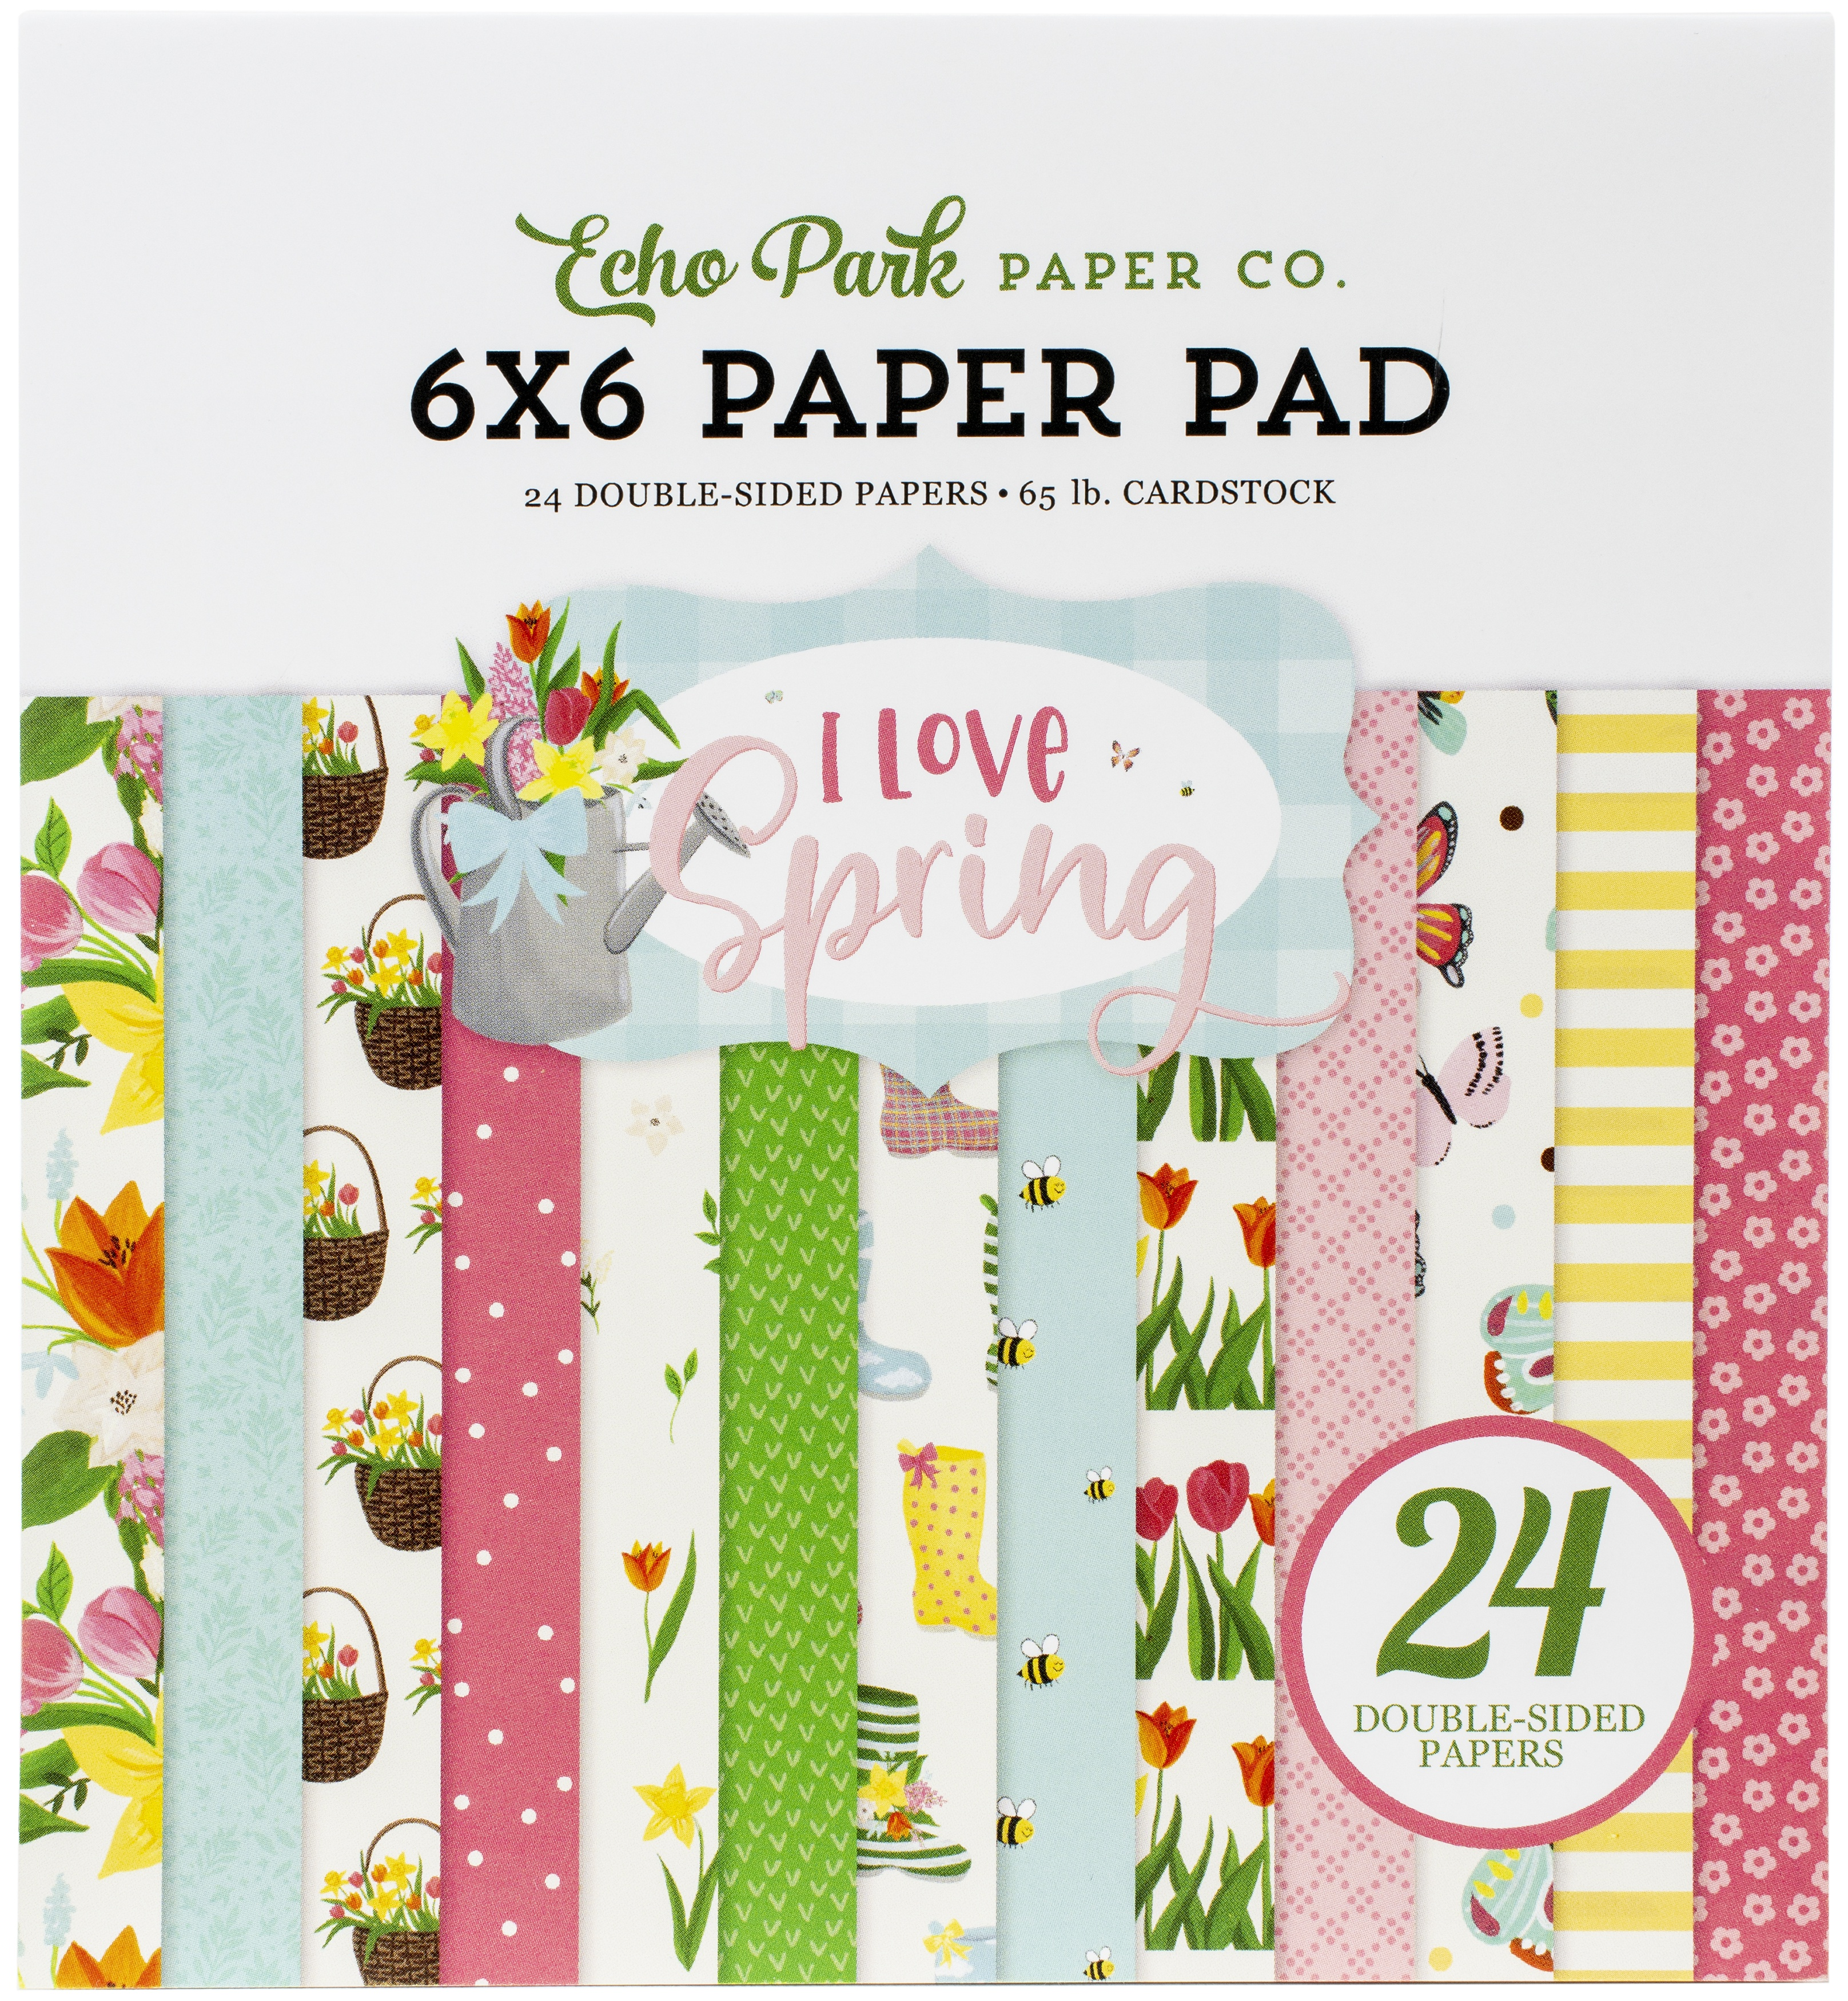 Echo Park Double-Sided Paper Pad 6X6 24/Pkg-I Love Spring